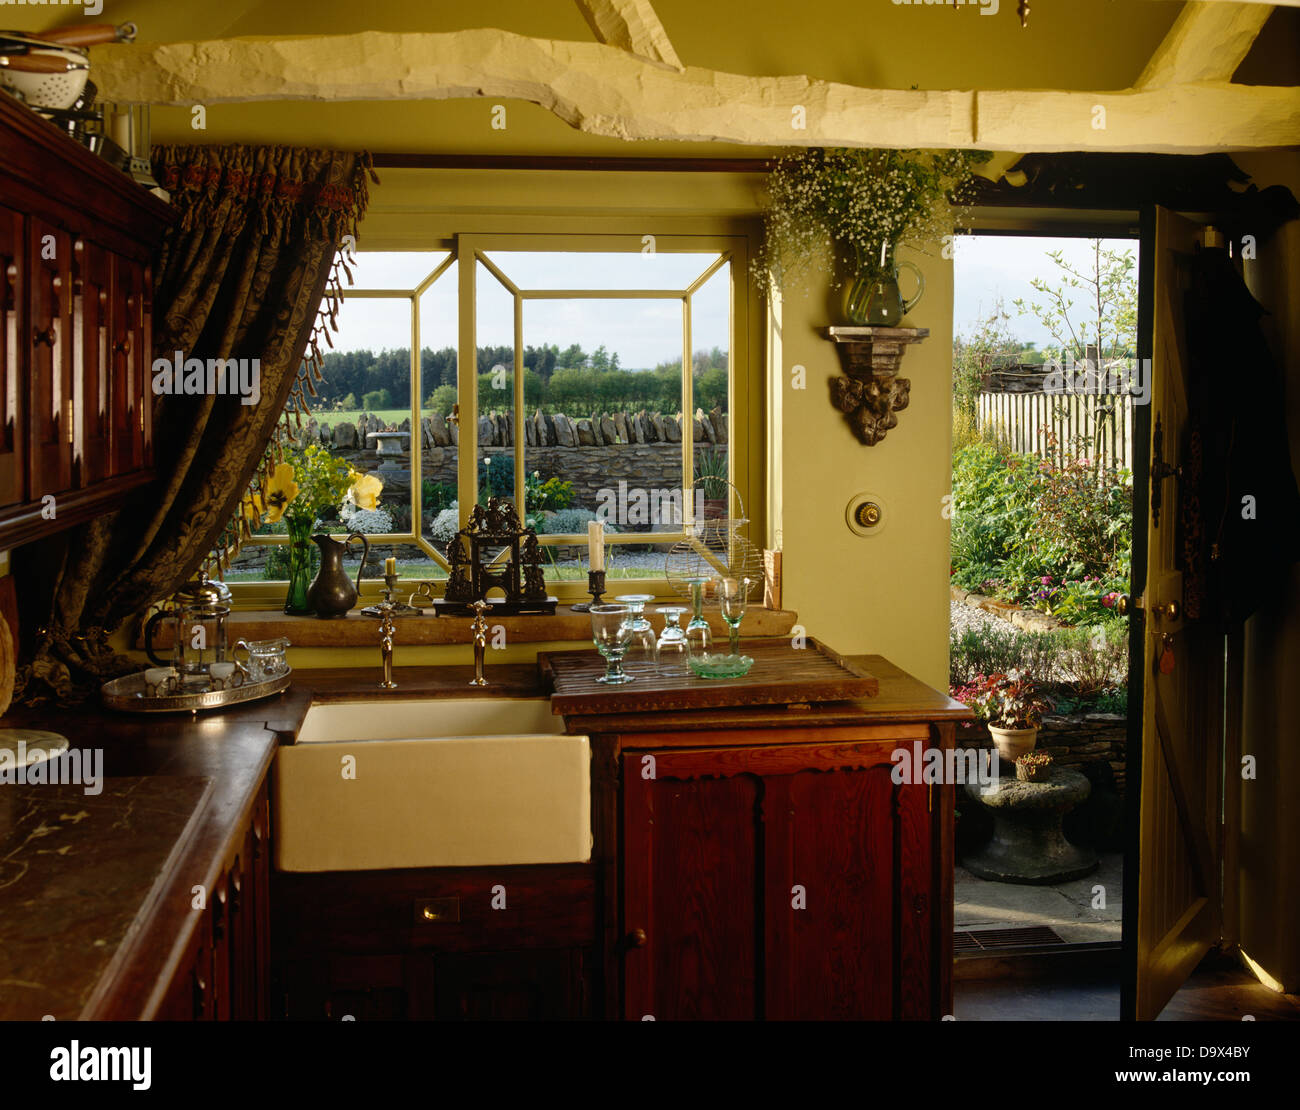 Old fashioned belfast sink beneath window in country style for Old country style kitchen